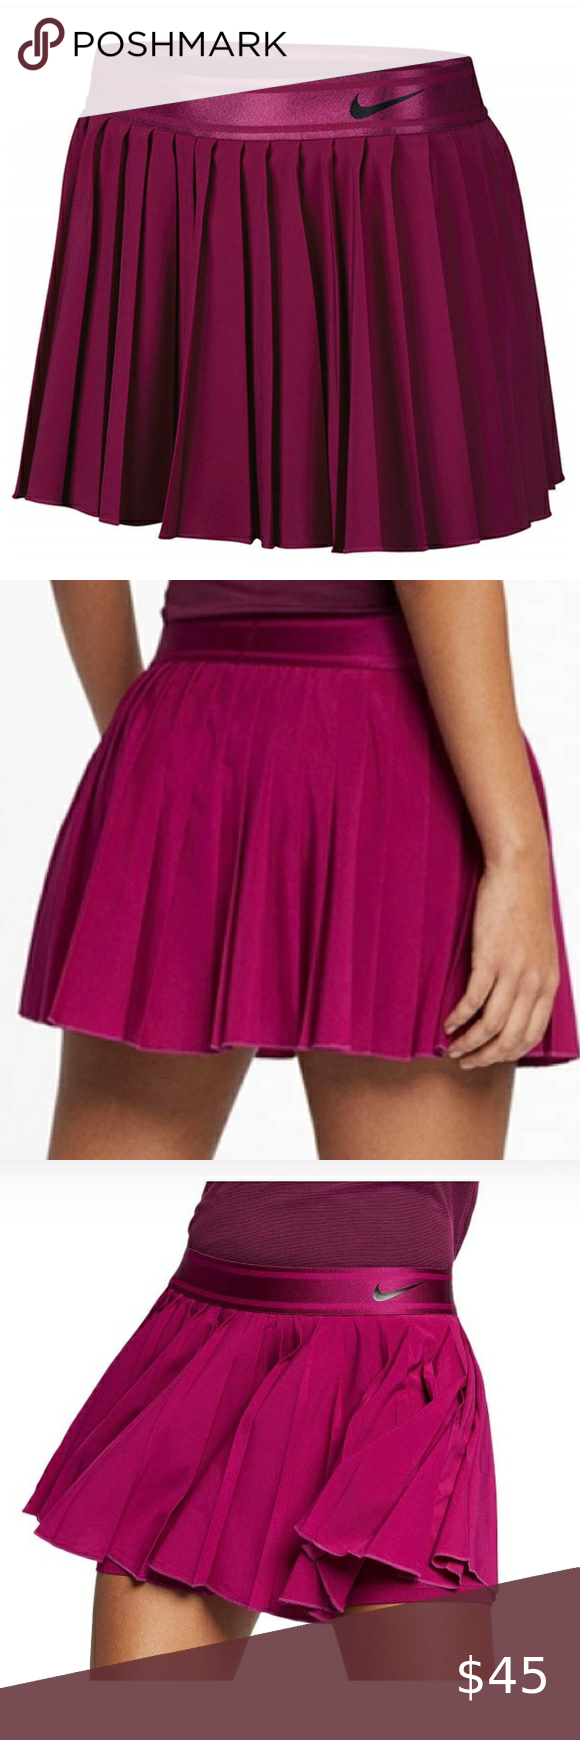 Nike Dri Fit Pleated Tennis Golf Skirt In 2020 Golf Skirts Pleated Tennis Skirt Tennis Skirt